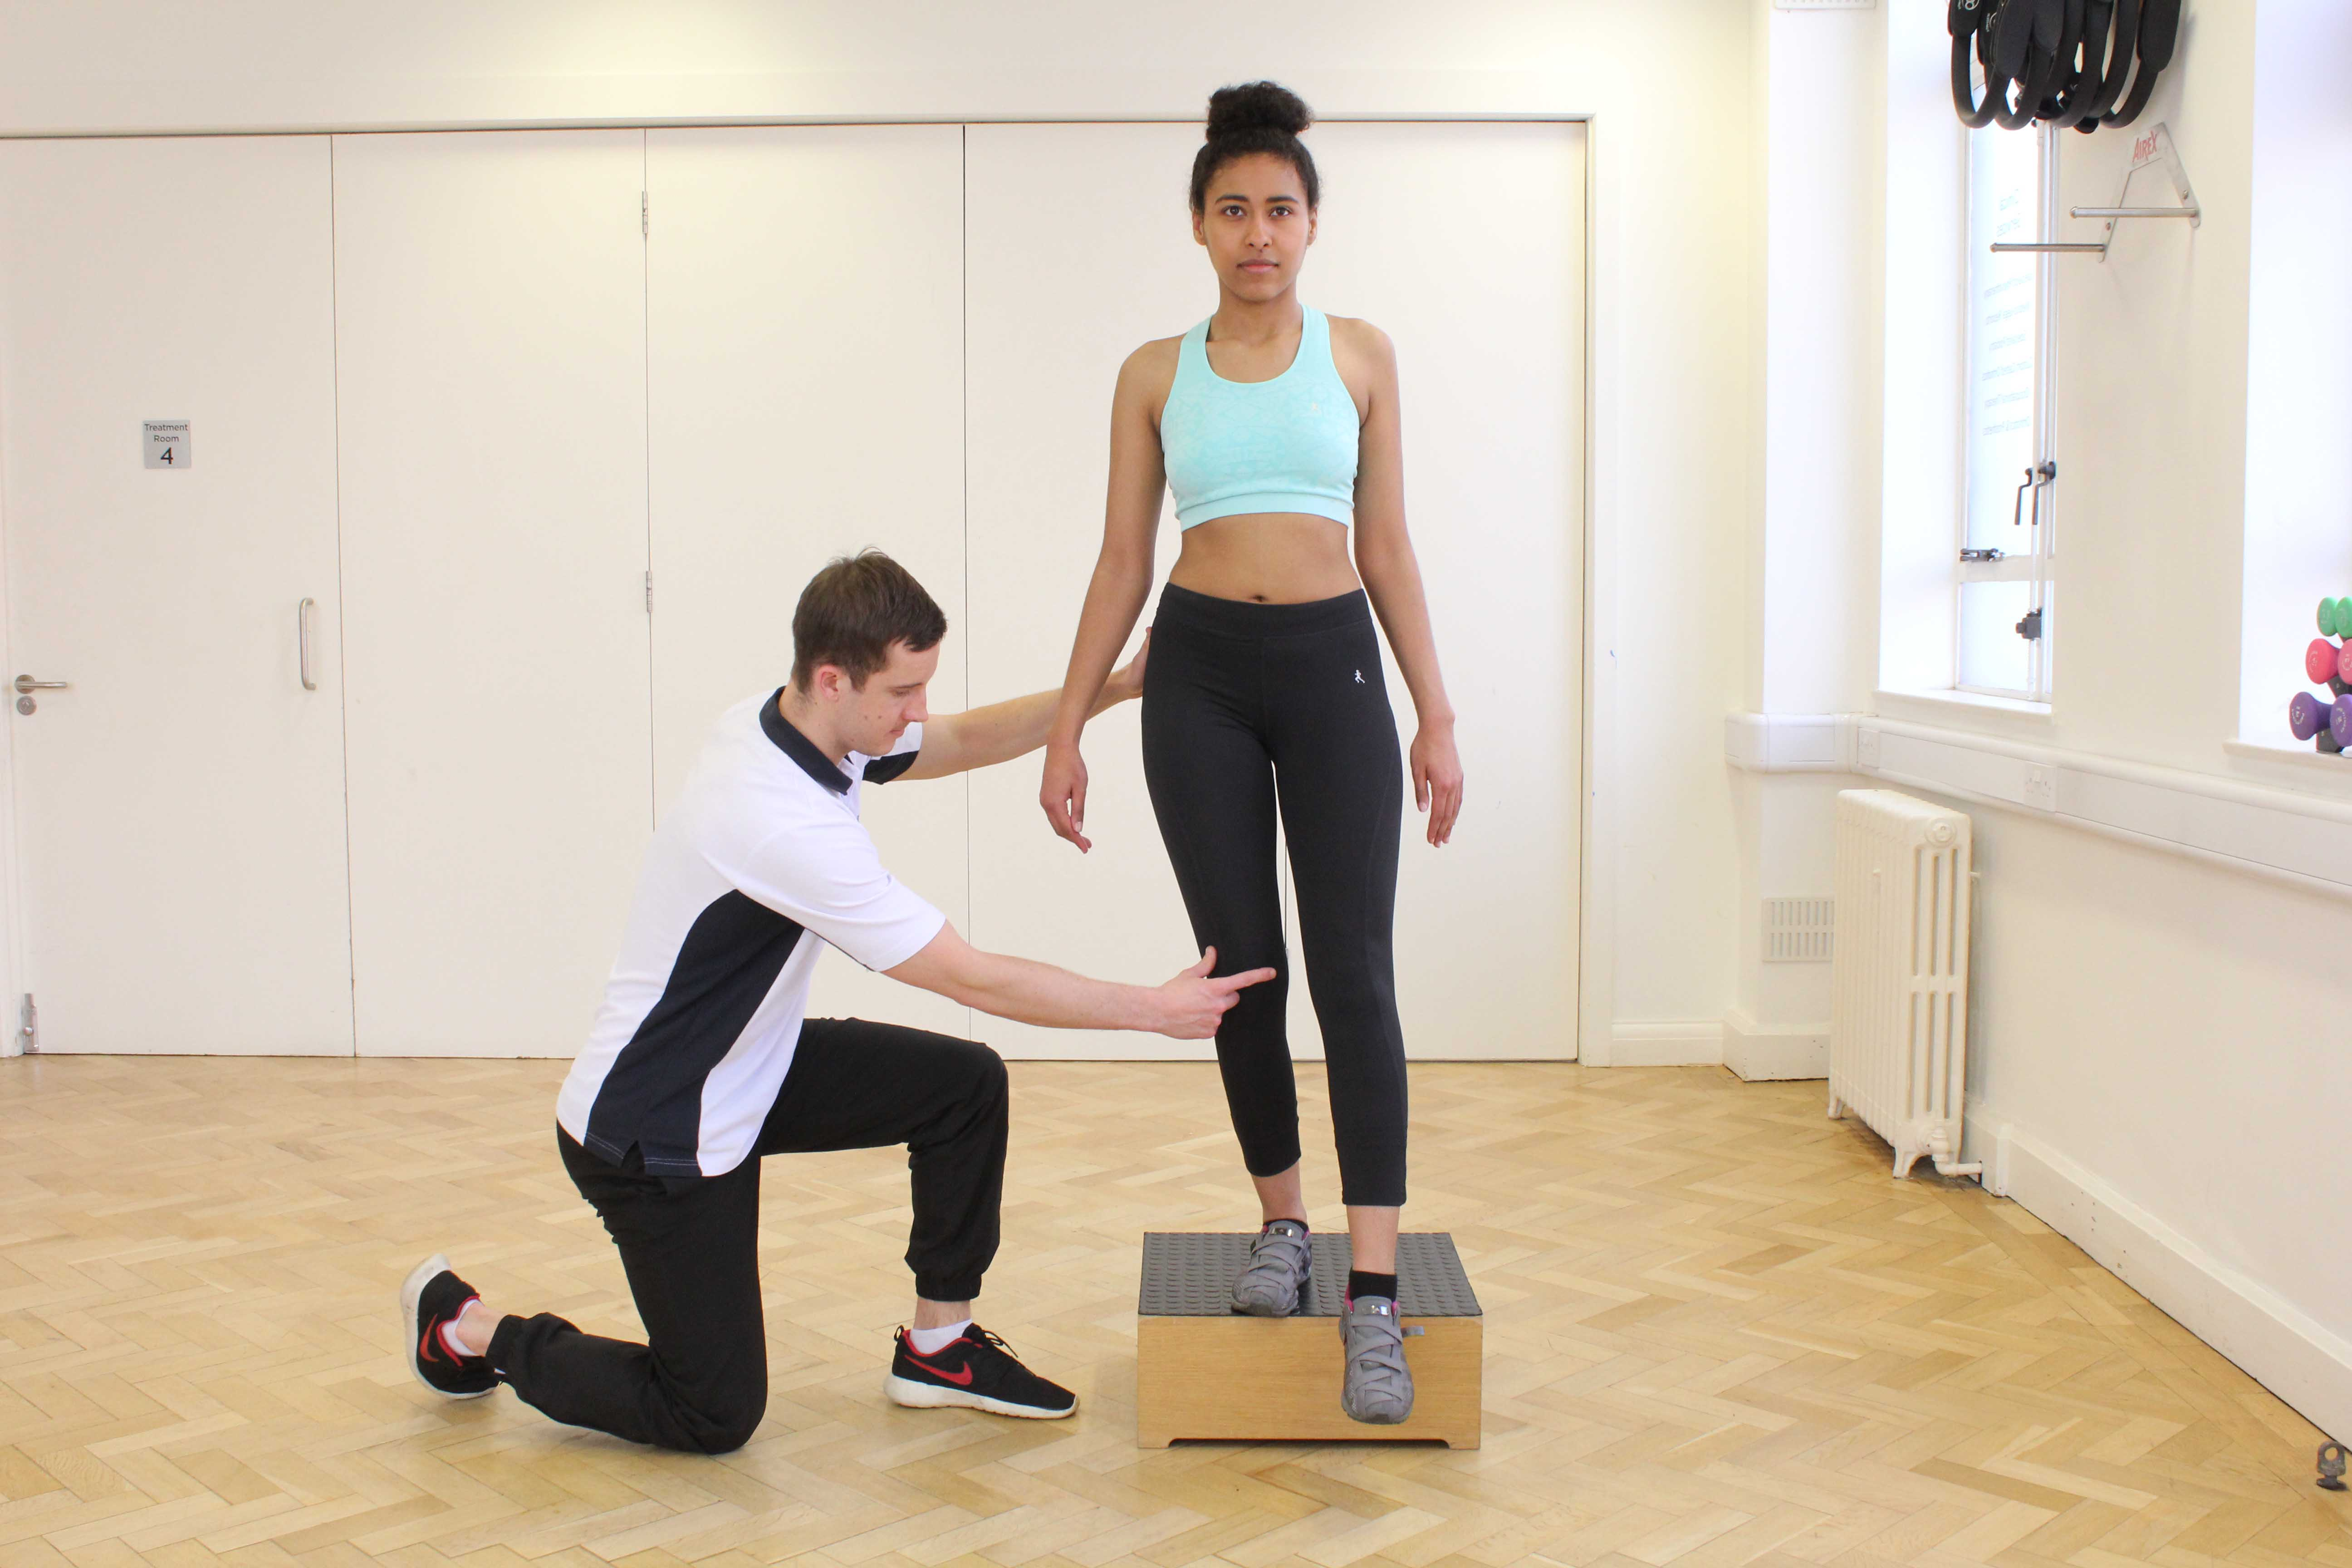 Physiotherapist led exercise in controlling foot pronation